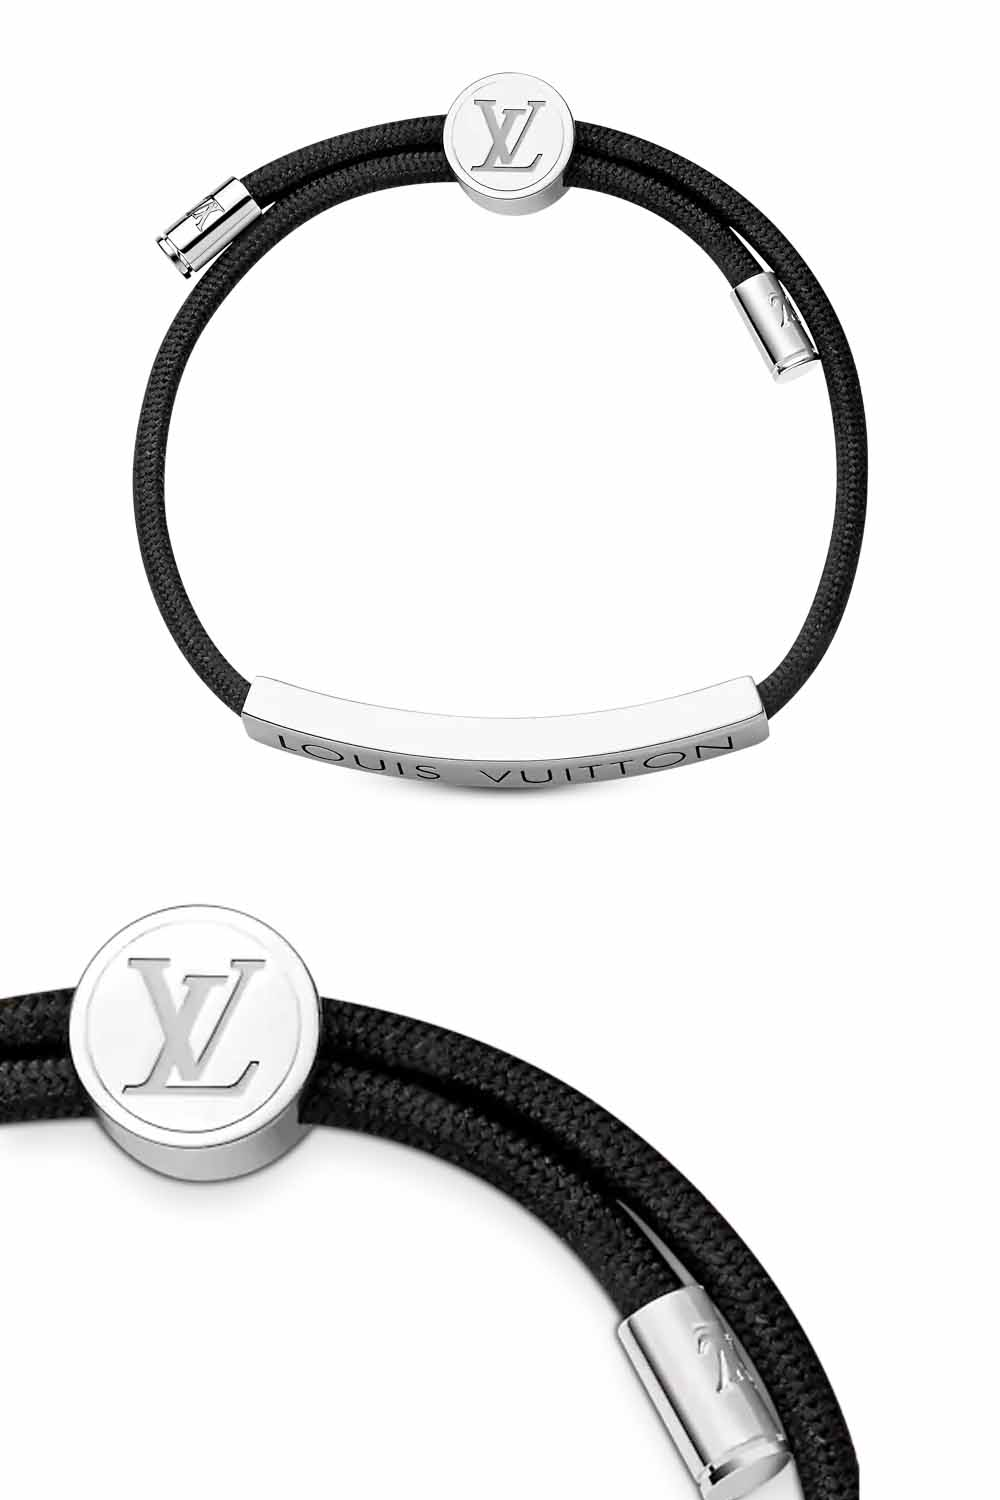 The-best-luxury-gifts-for-men-Louis-Vuitton-LV-SPACE-BRACELET-black-gift